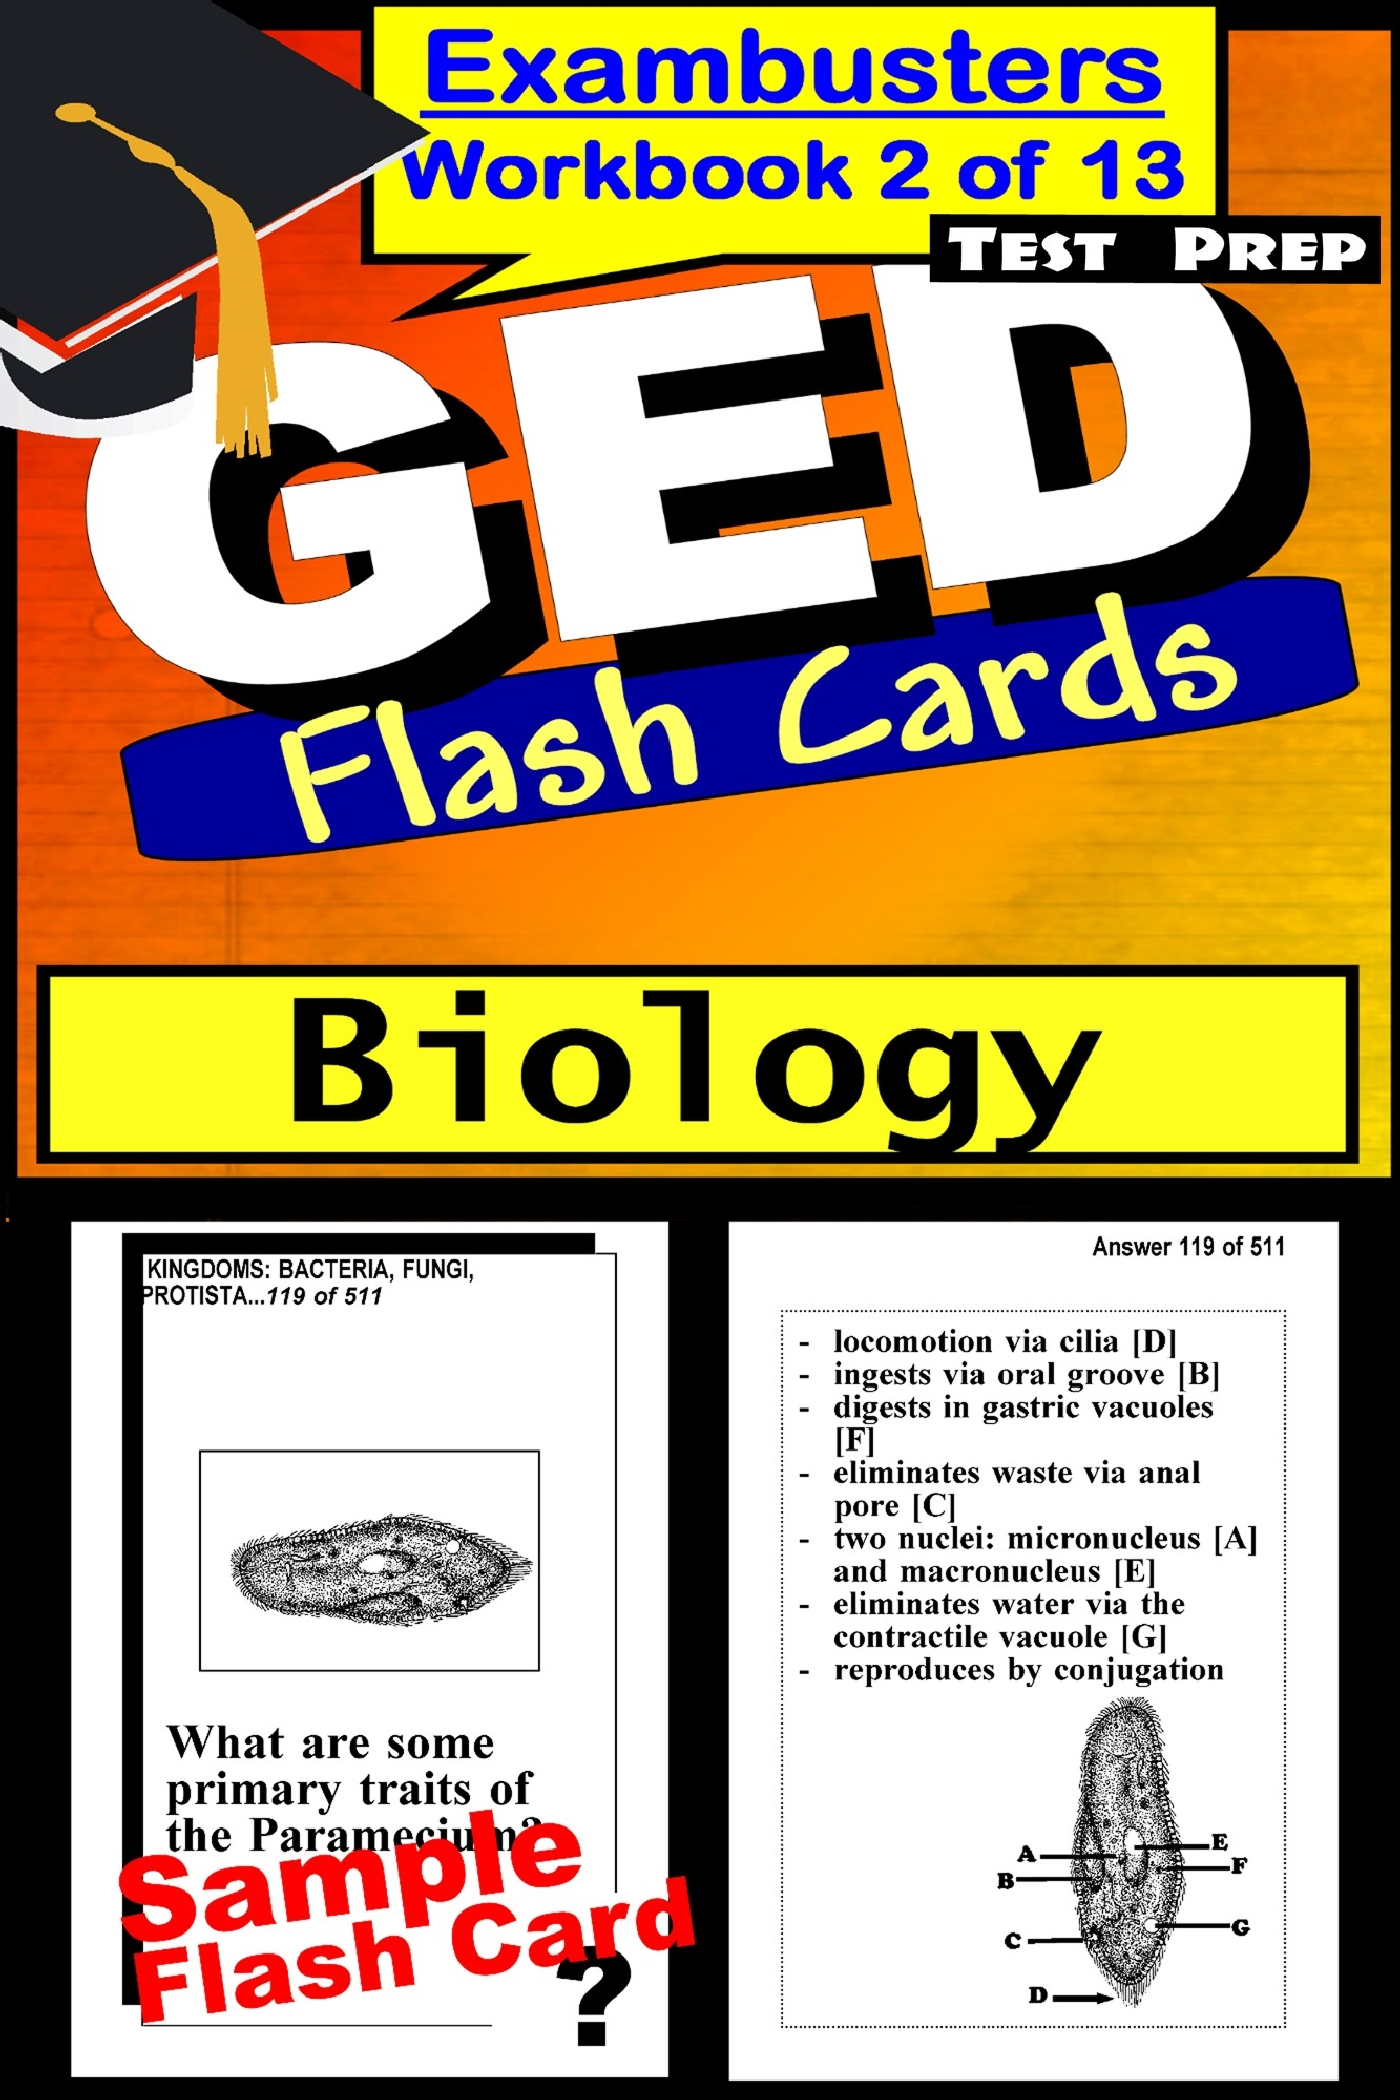 GED Test Prep Biology Review--Exambusters Flash Cards--Workbook 2 of 13: GED Exam Study Guide